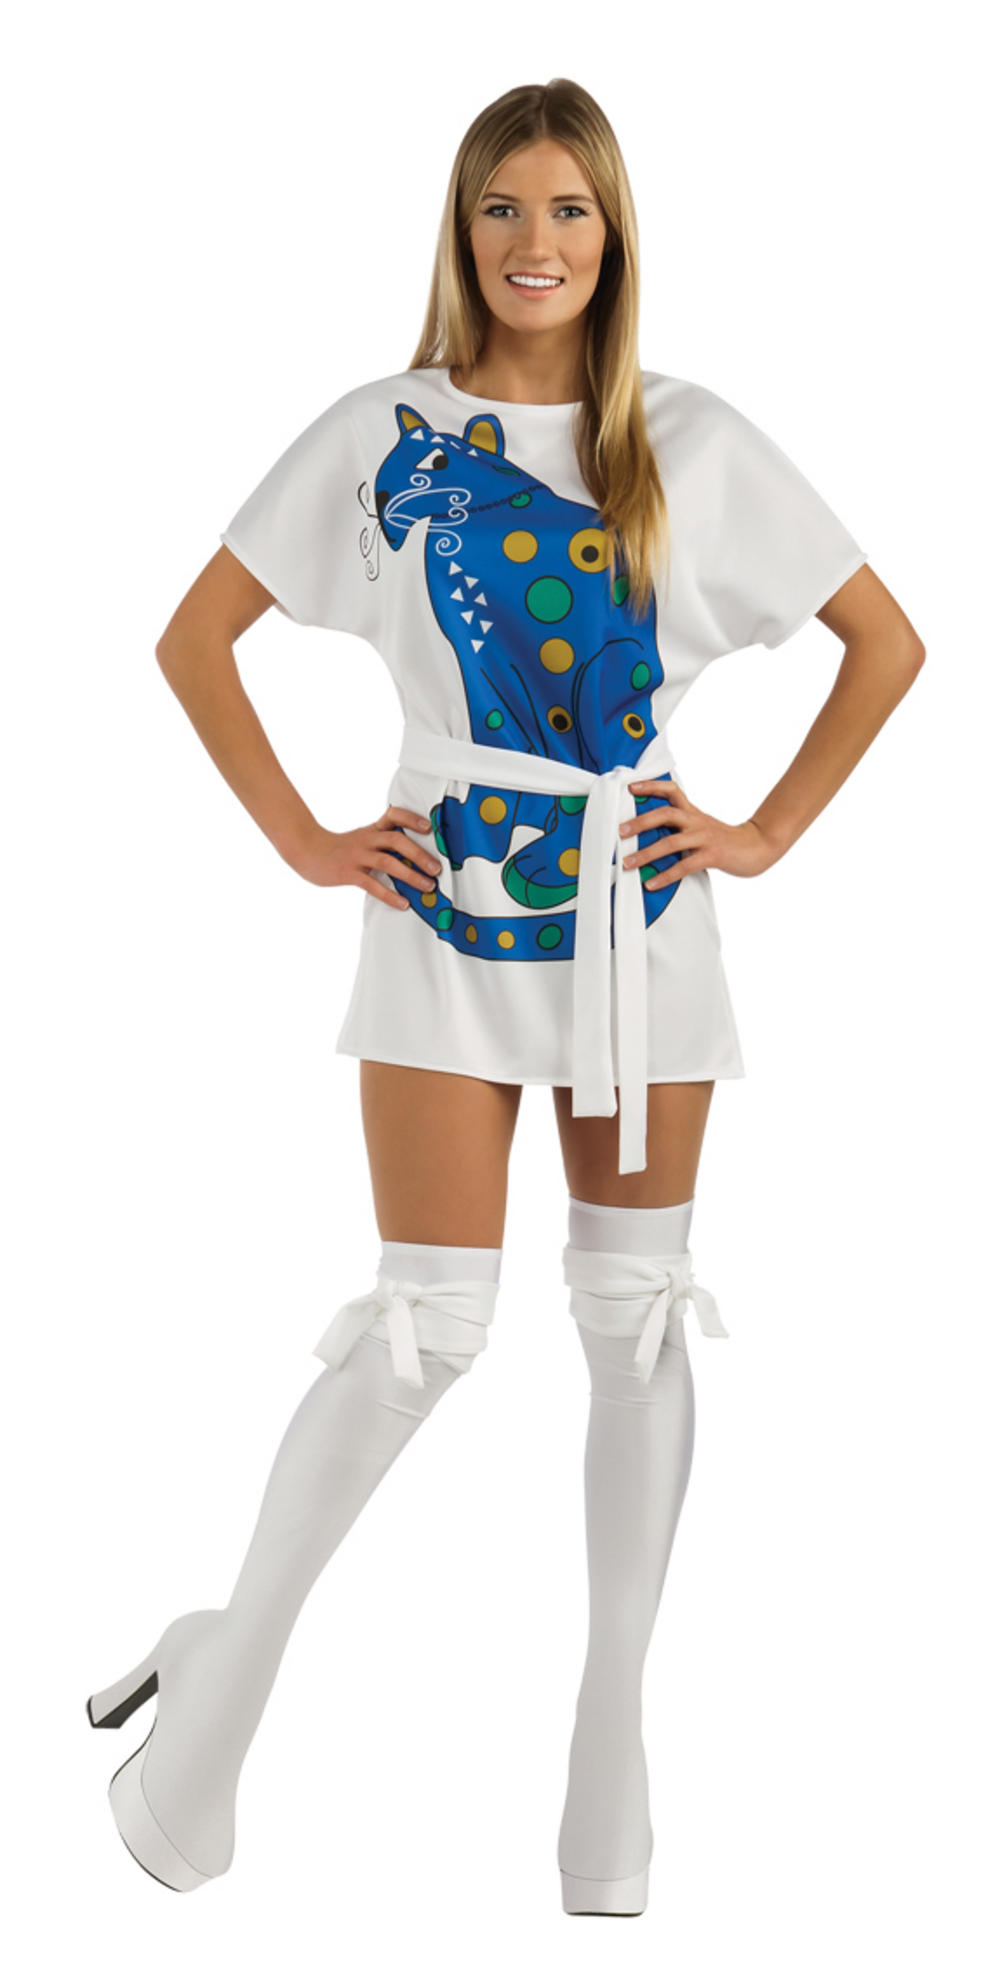 Officially Licensed Abba Agnetha 70s Dress Costume